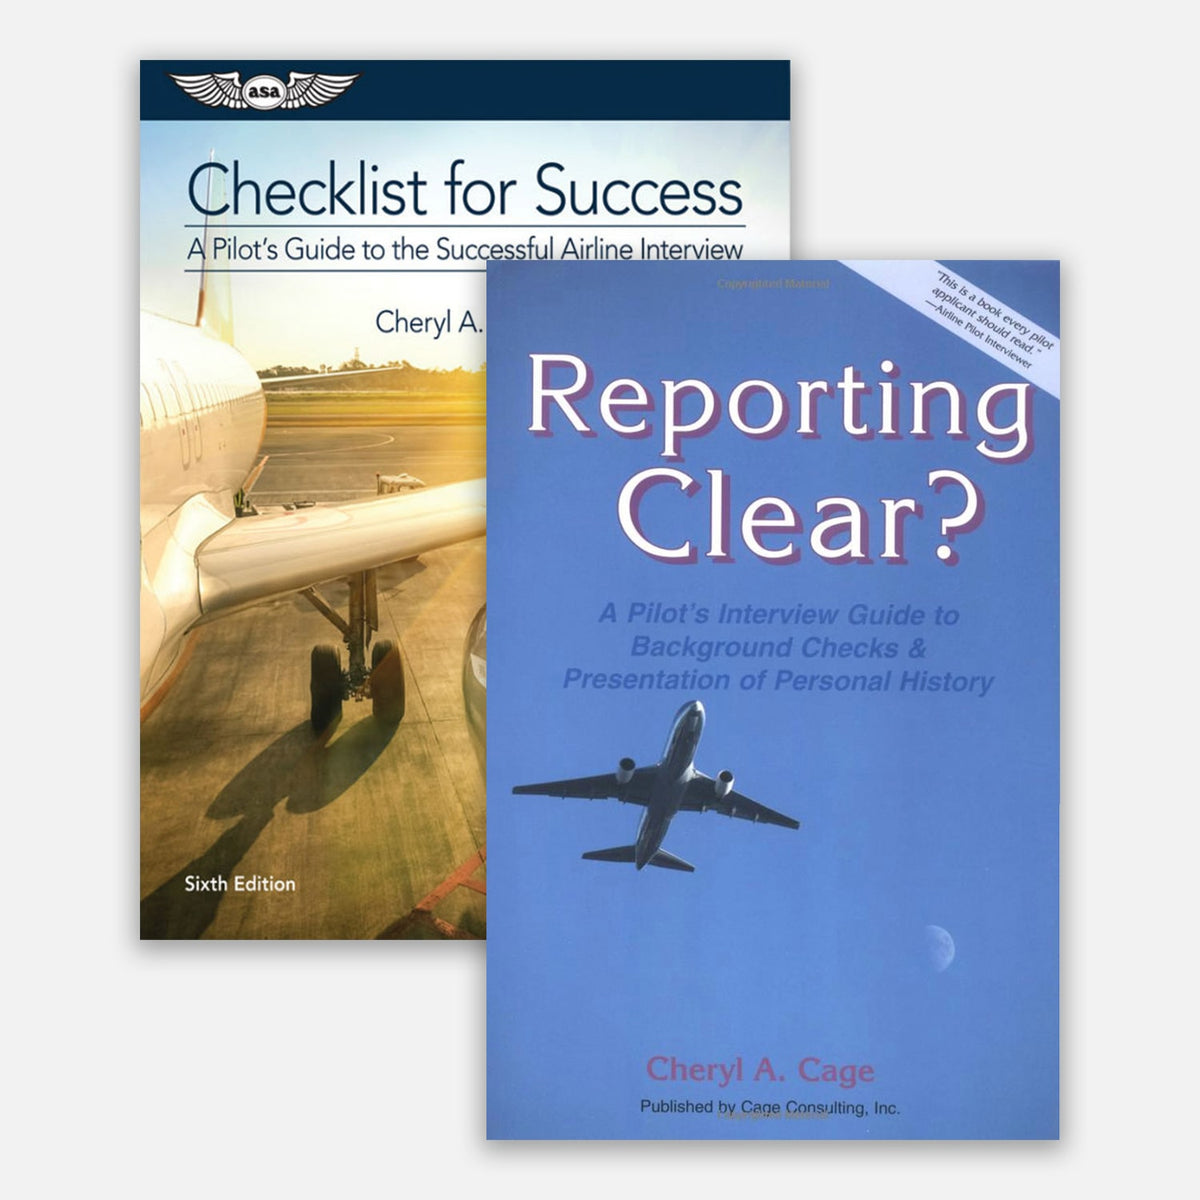 Cage Marshall Consulting two Book Covers - Checklist for Success and Reporting Clear